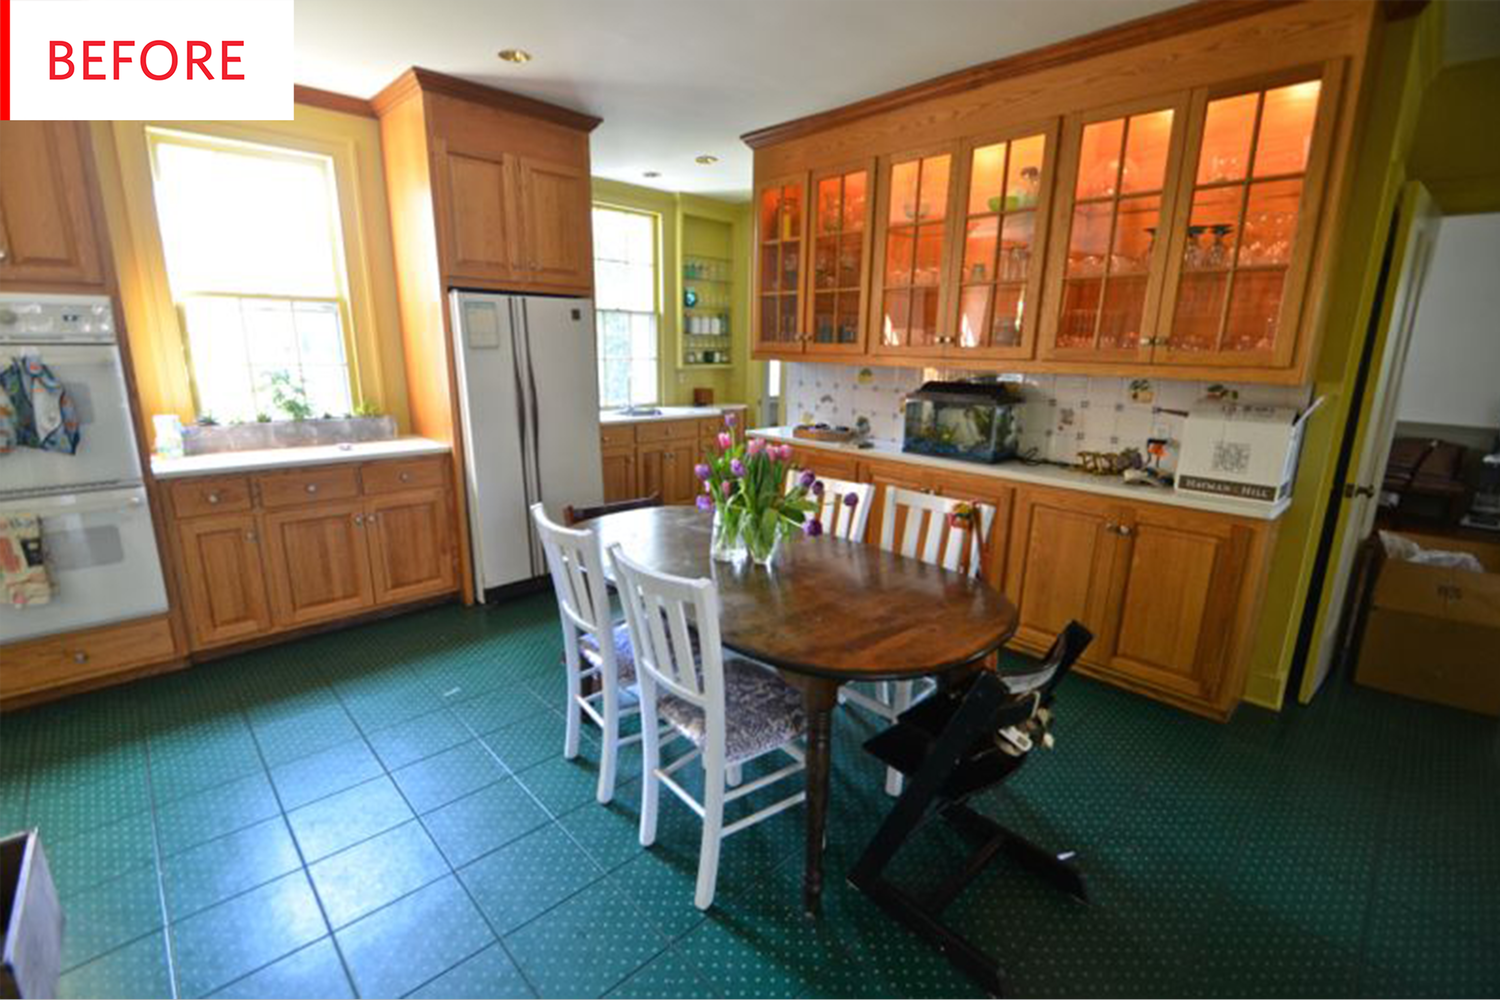 Before And After Dramatic Renovation Free Kitchen